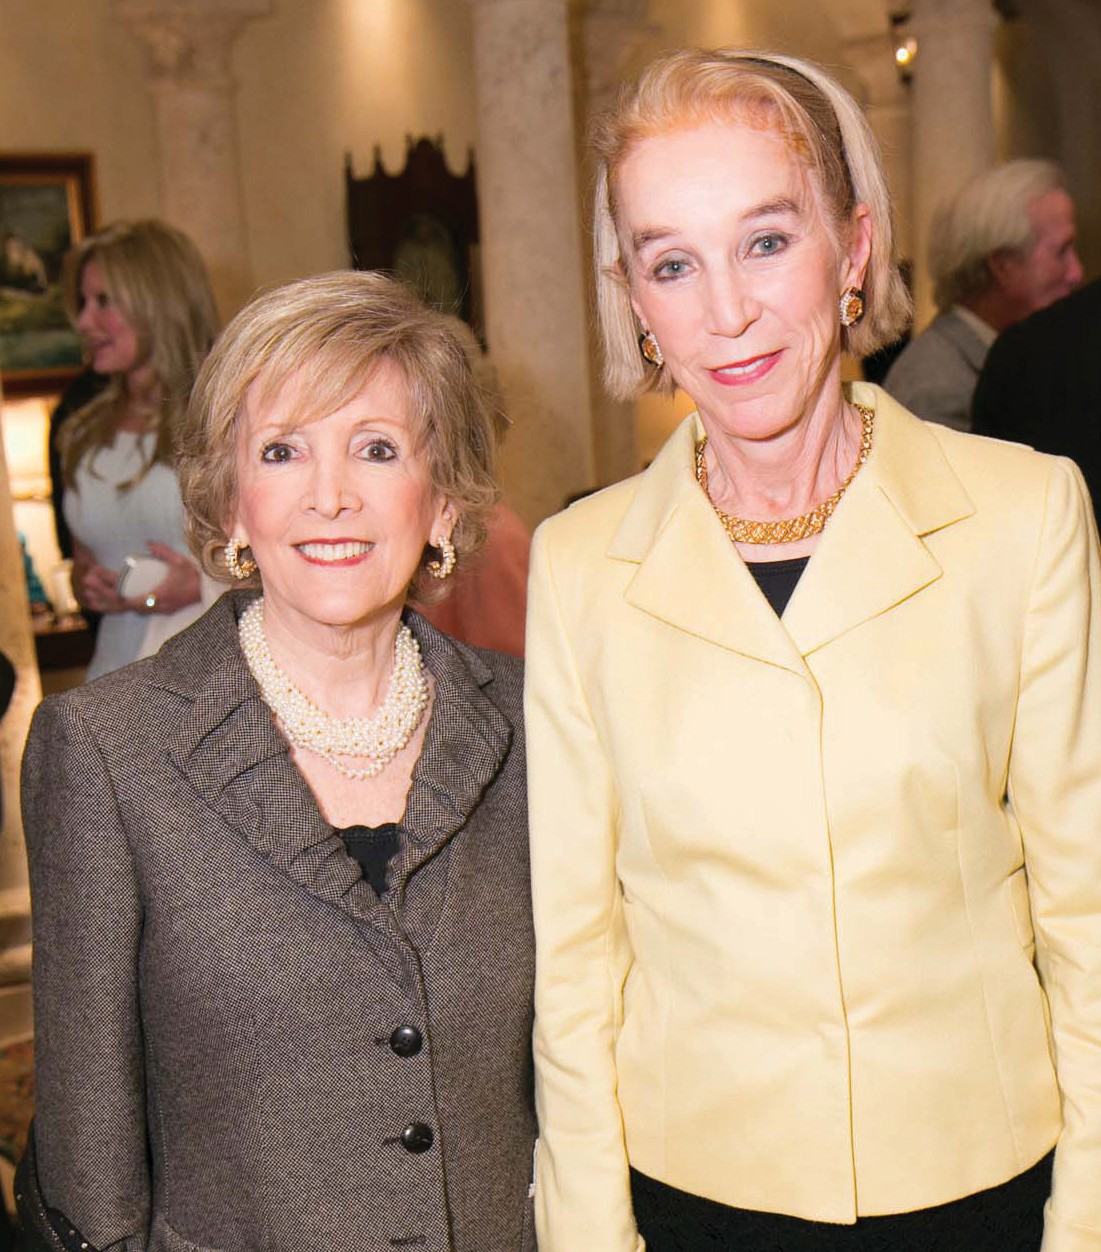 Reception for Cleveland Clinic ball, home of Jane Told and